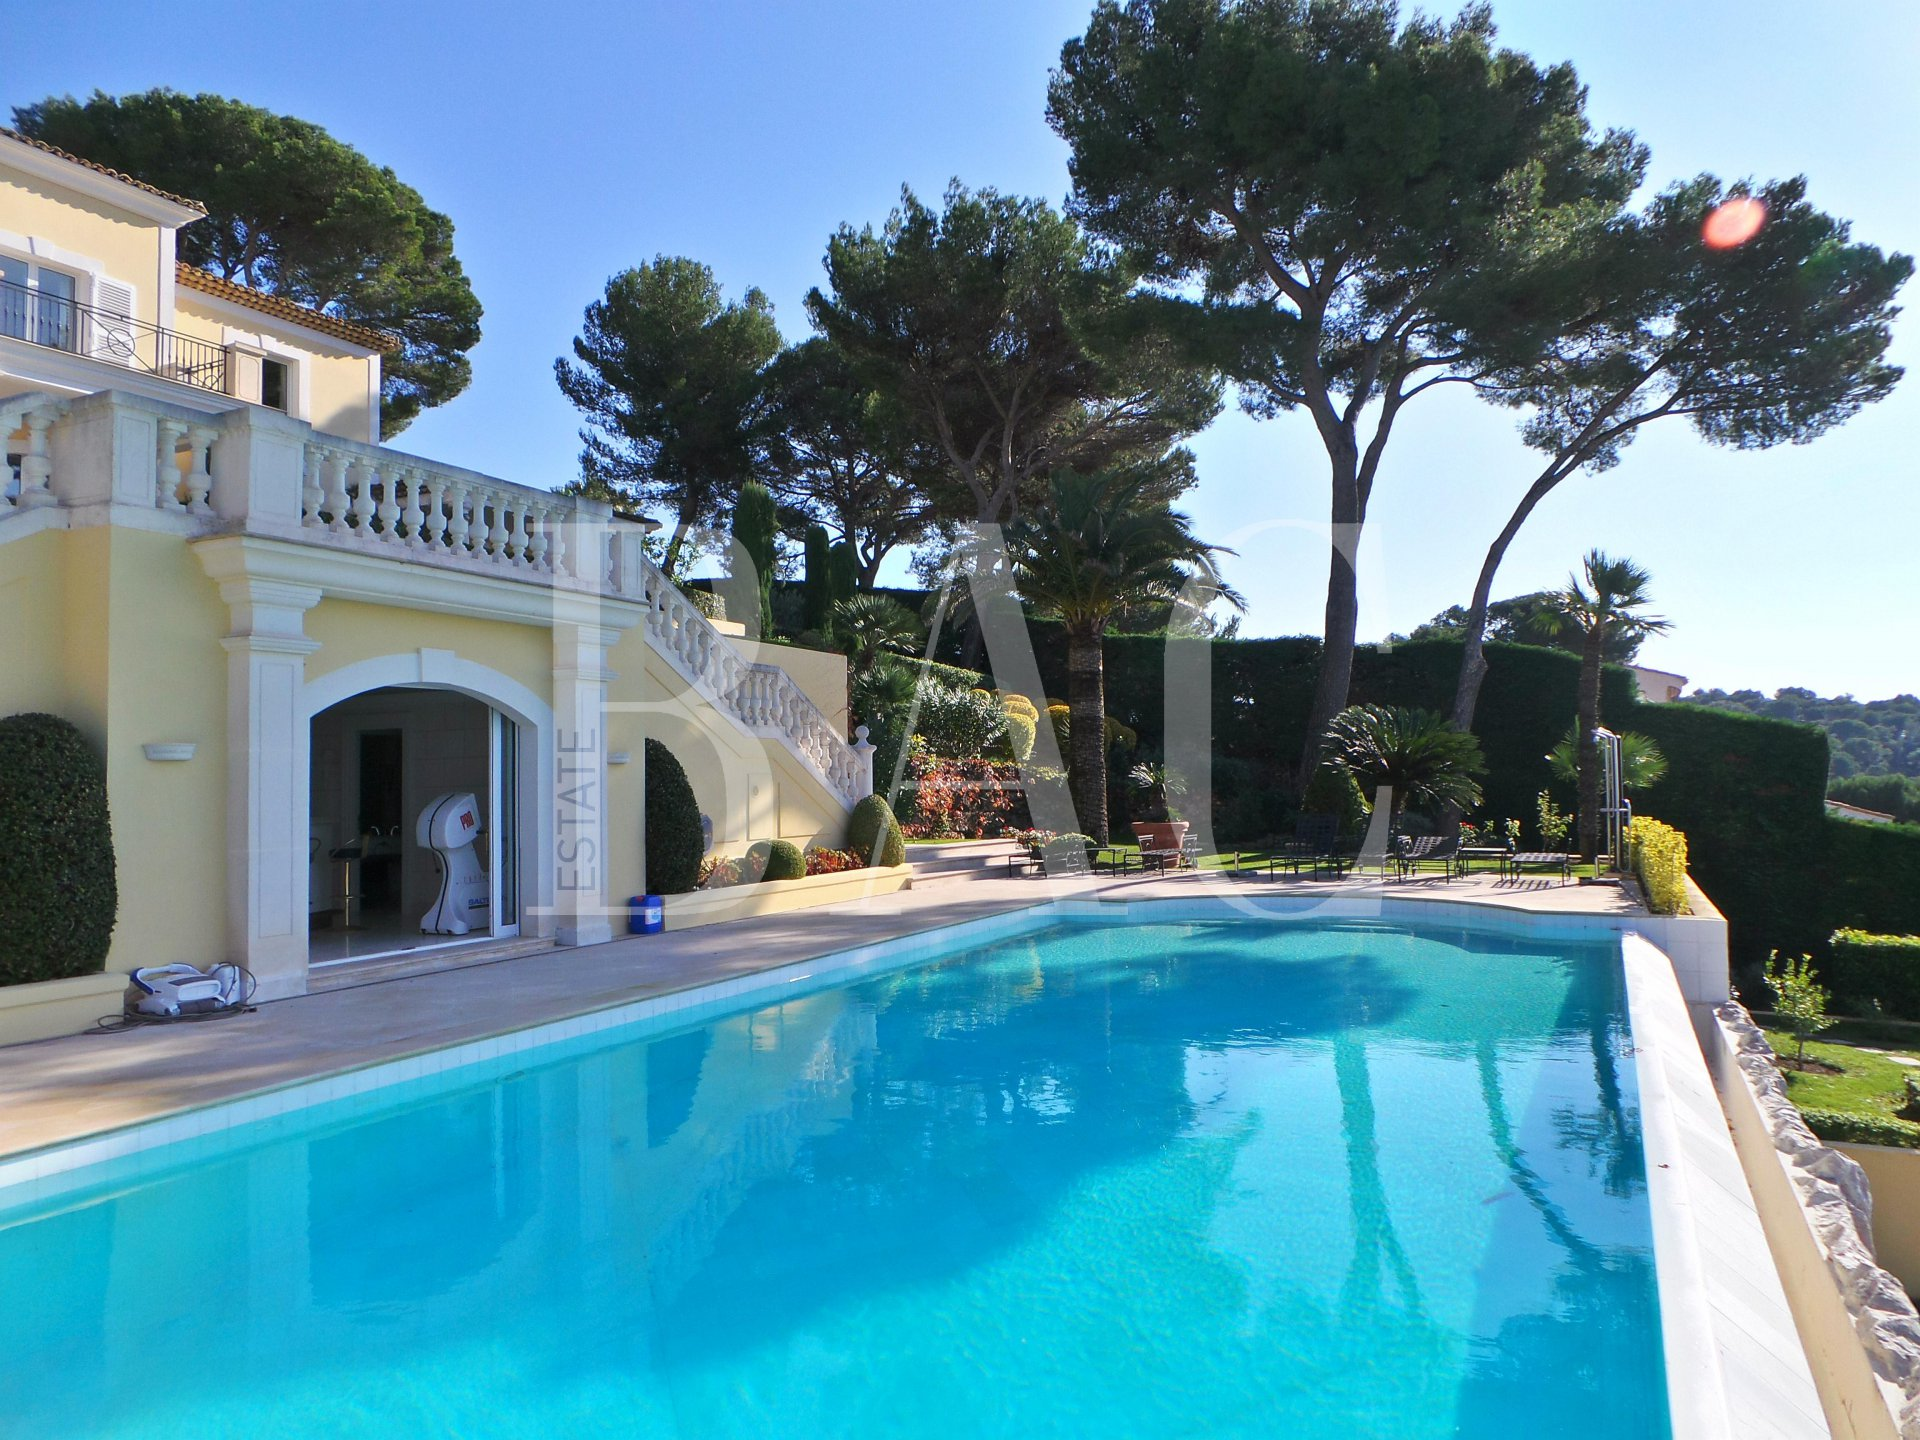 Somptuous villa on the heights of Cannes. I named it the Jade Villa (gemstone)